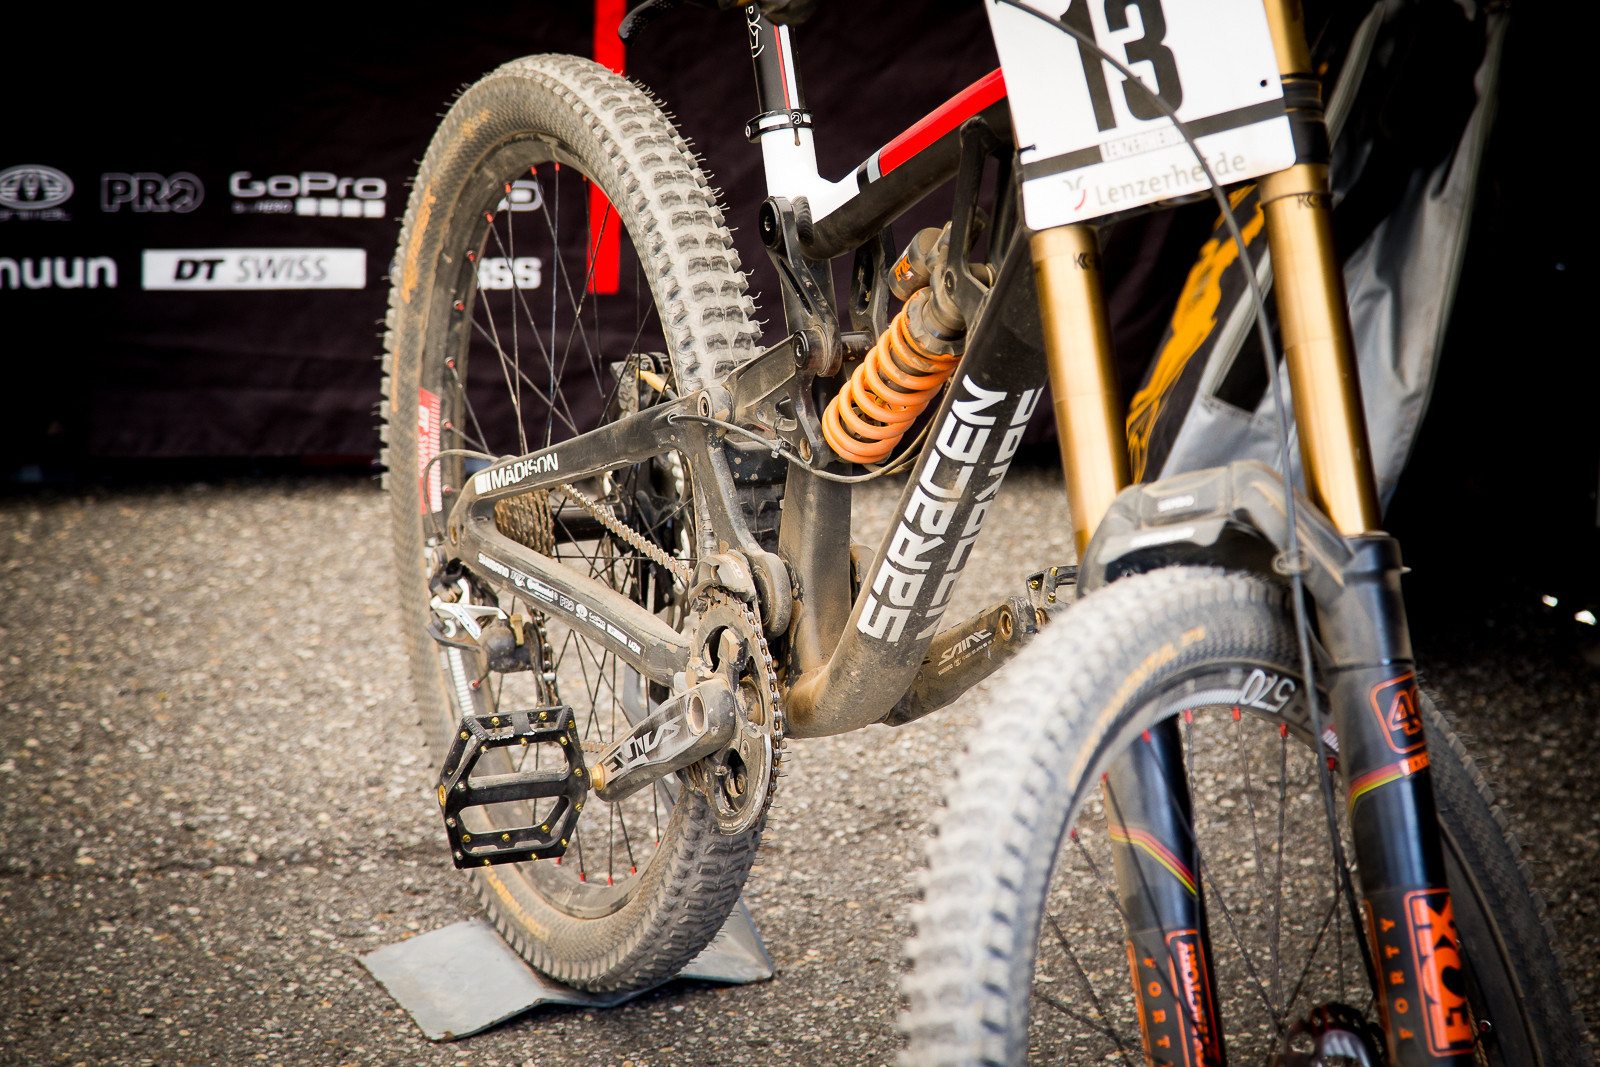 Sam Dale on Flat Pedals - PIT BITS - World Cup Lenzerheide, Switzerland - Mountain Biking Pictures - Vital MTB